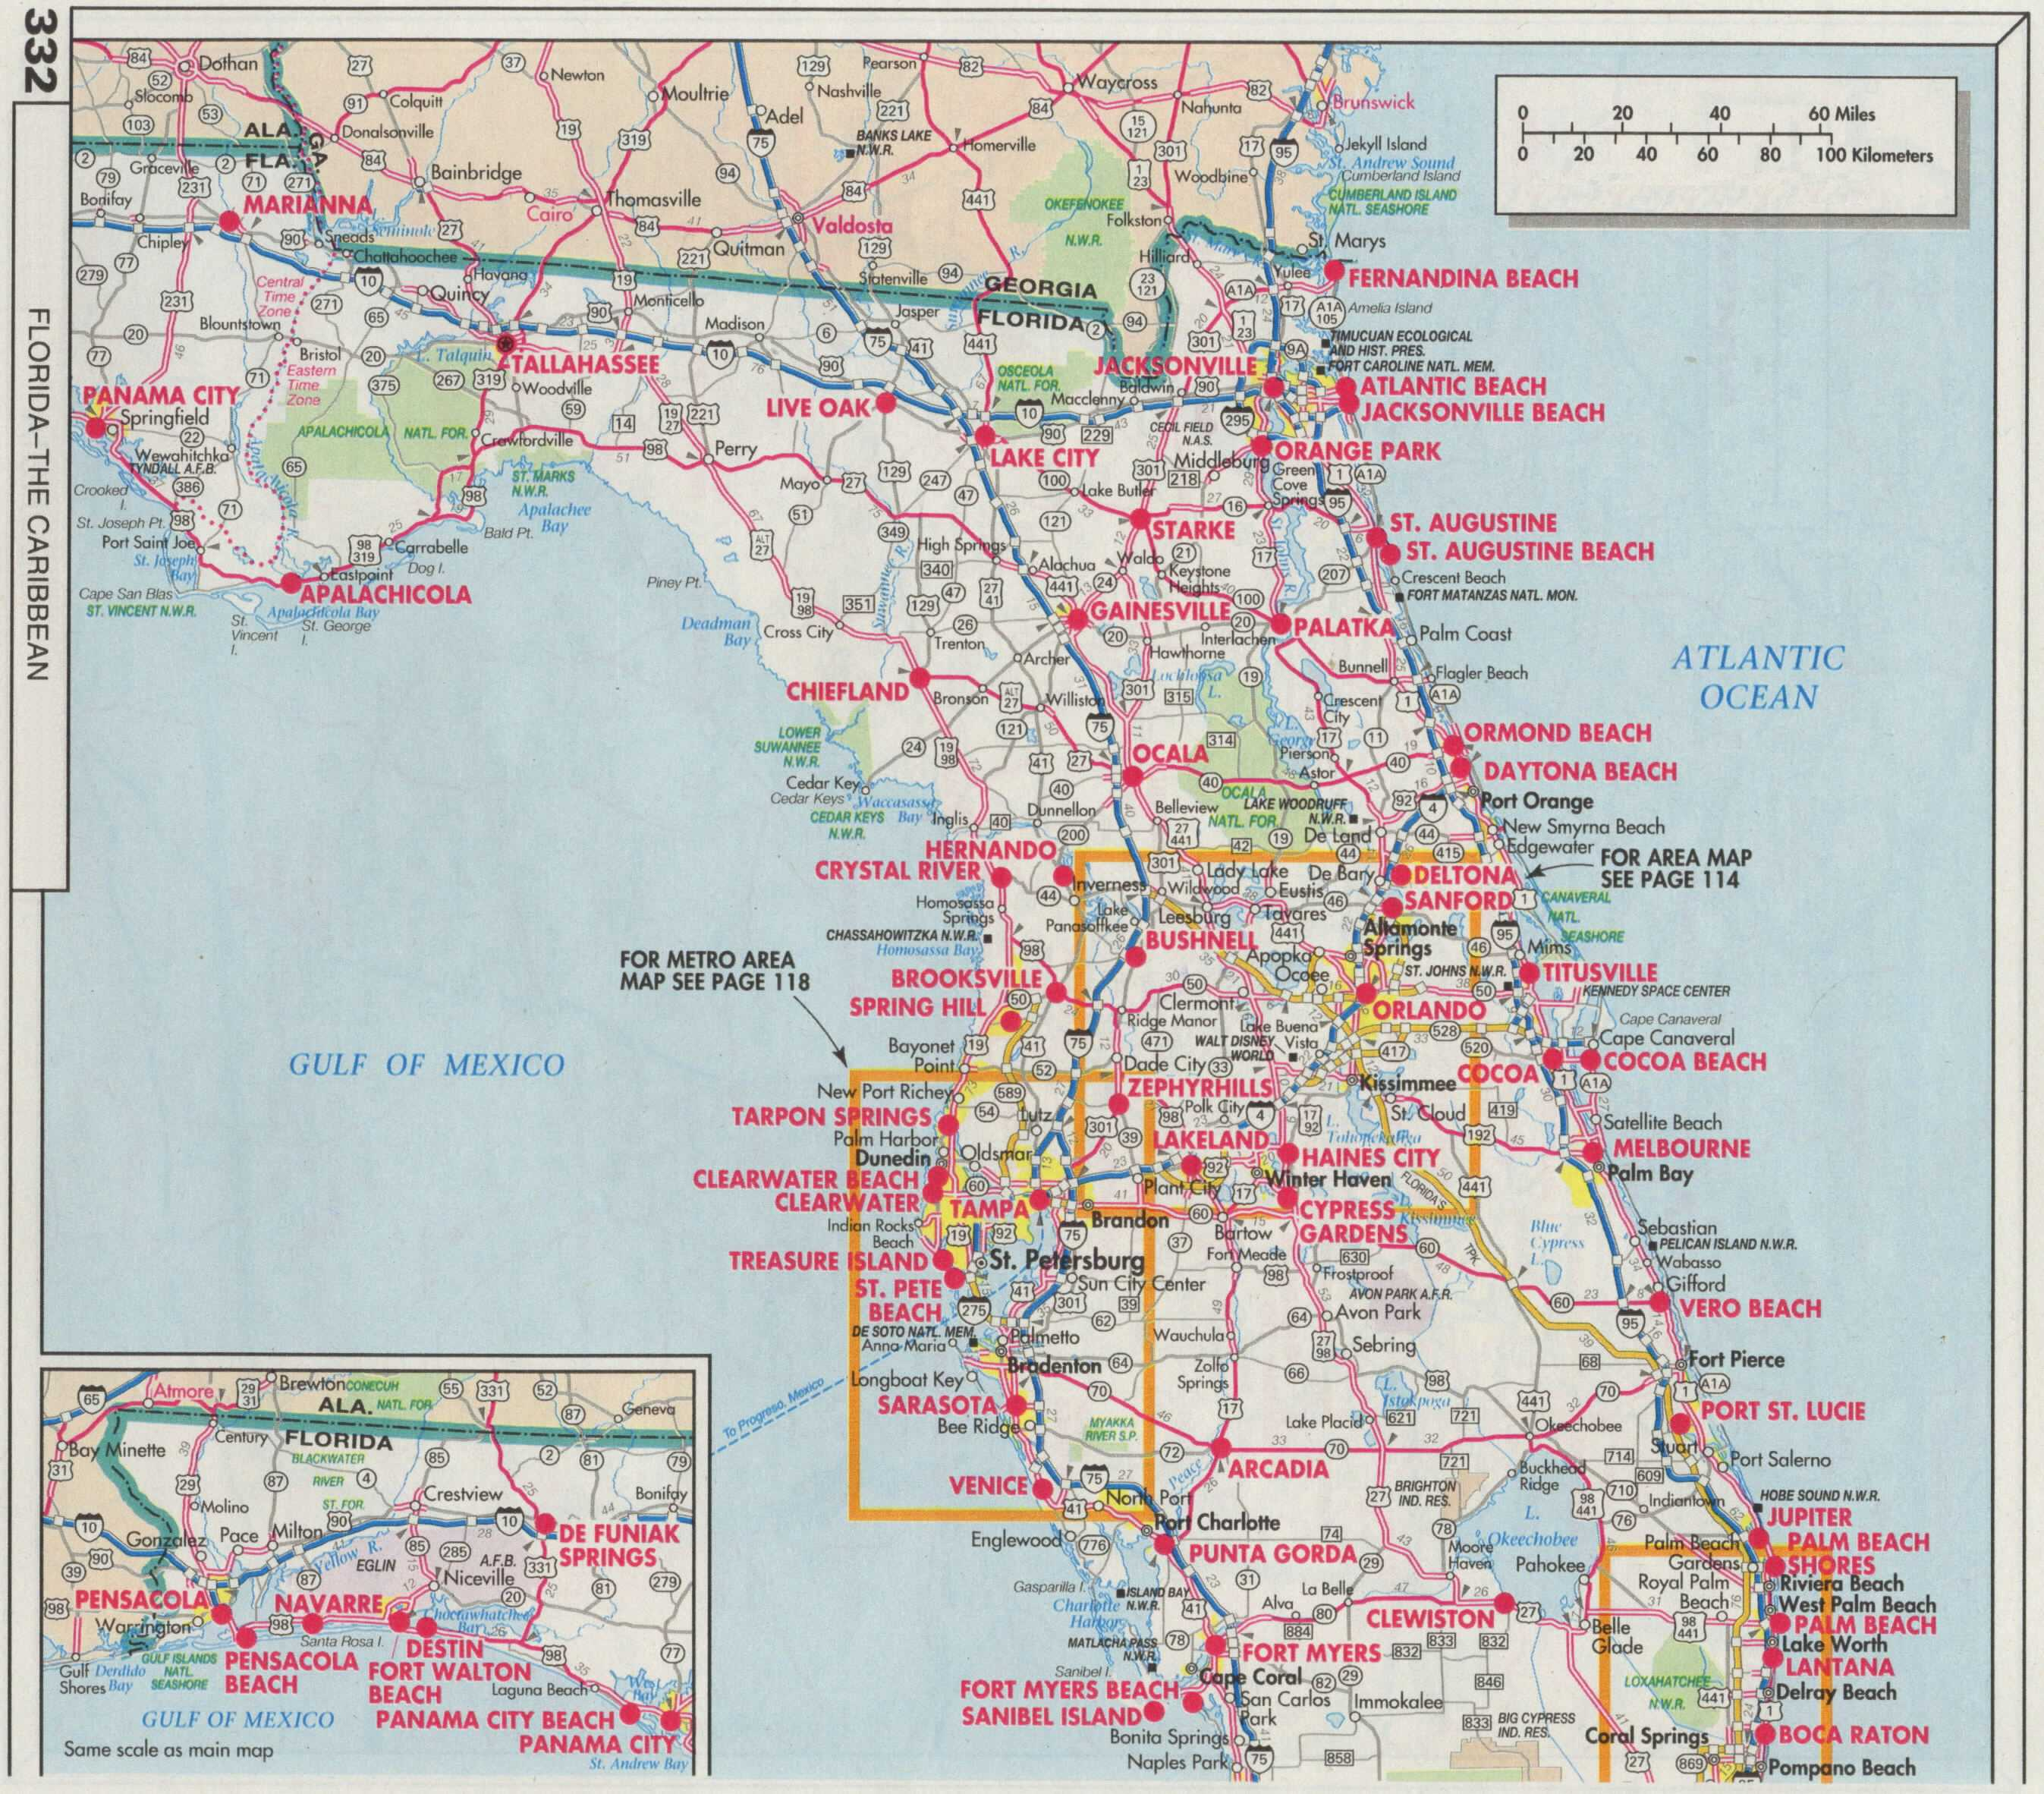 Road Map Florida crime spot map map showing equator